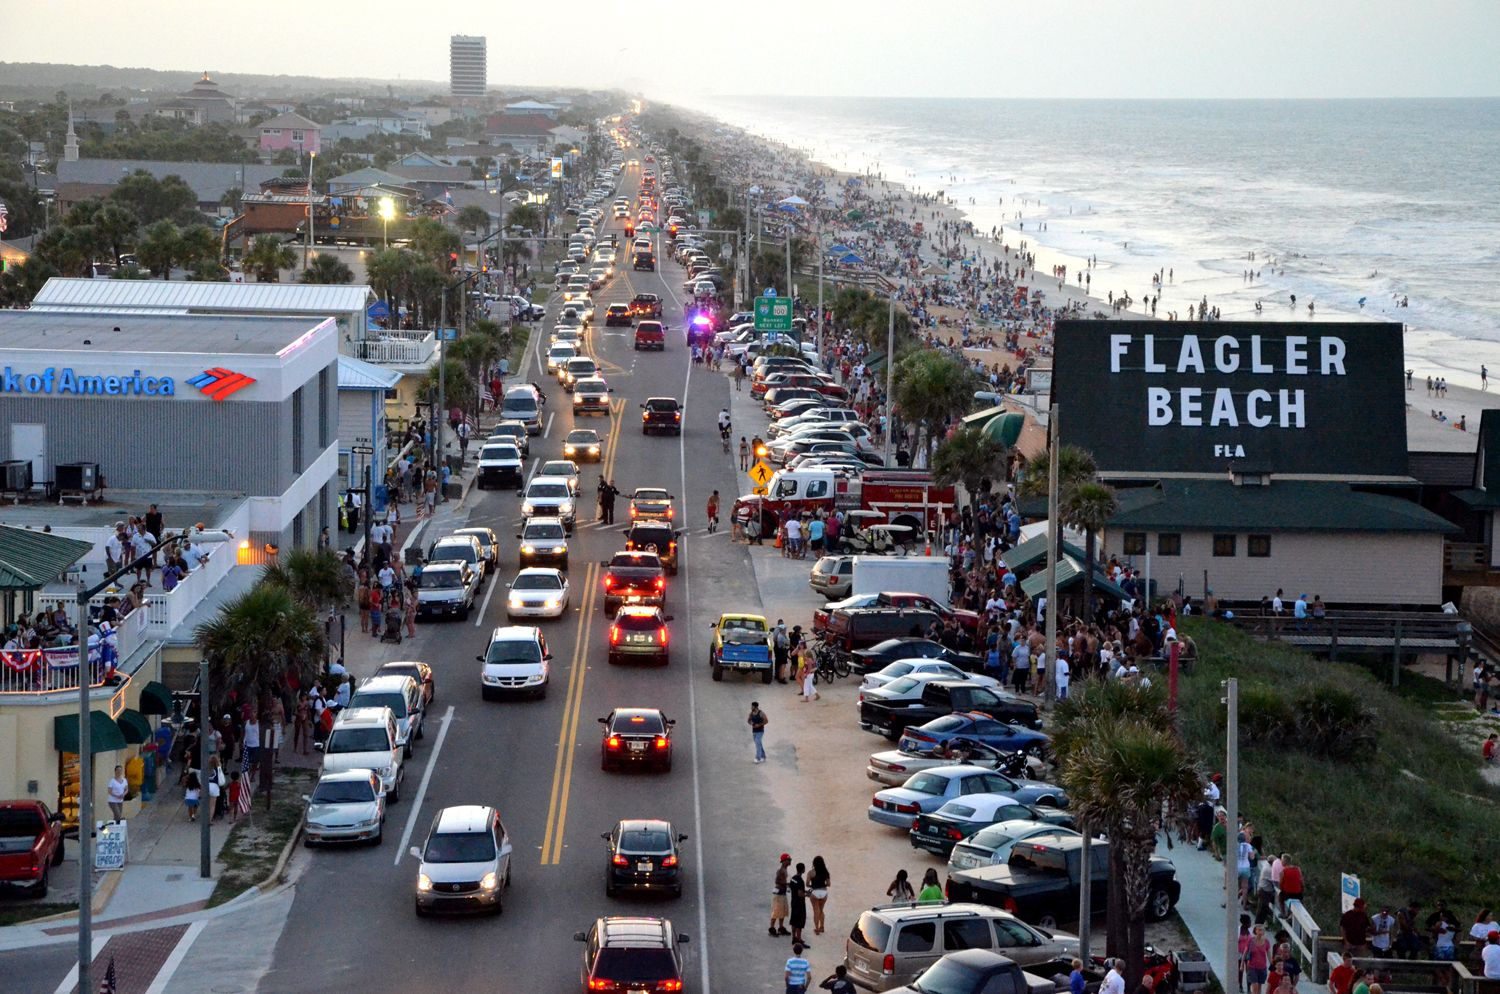 Oh My Actually Flagler Beach Only Gets This Crowded About 4 Times A Year 4th Of July As Pictured Bike Week In The Early Spring Biketoberfest You